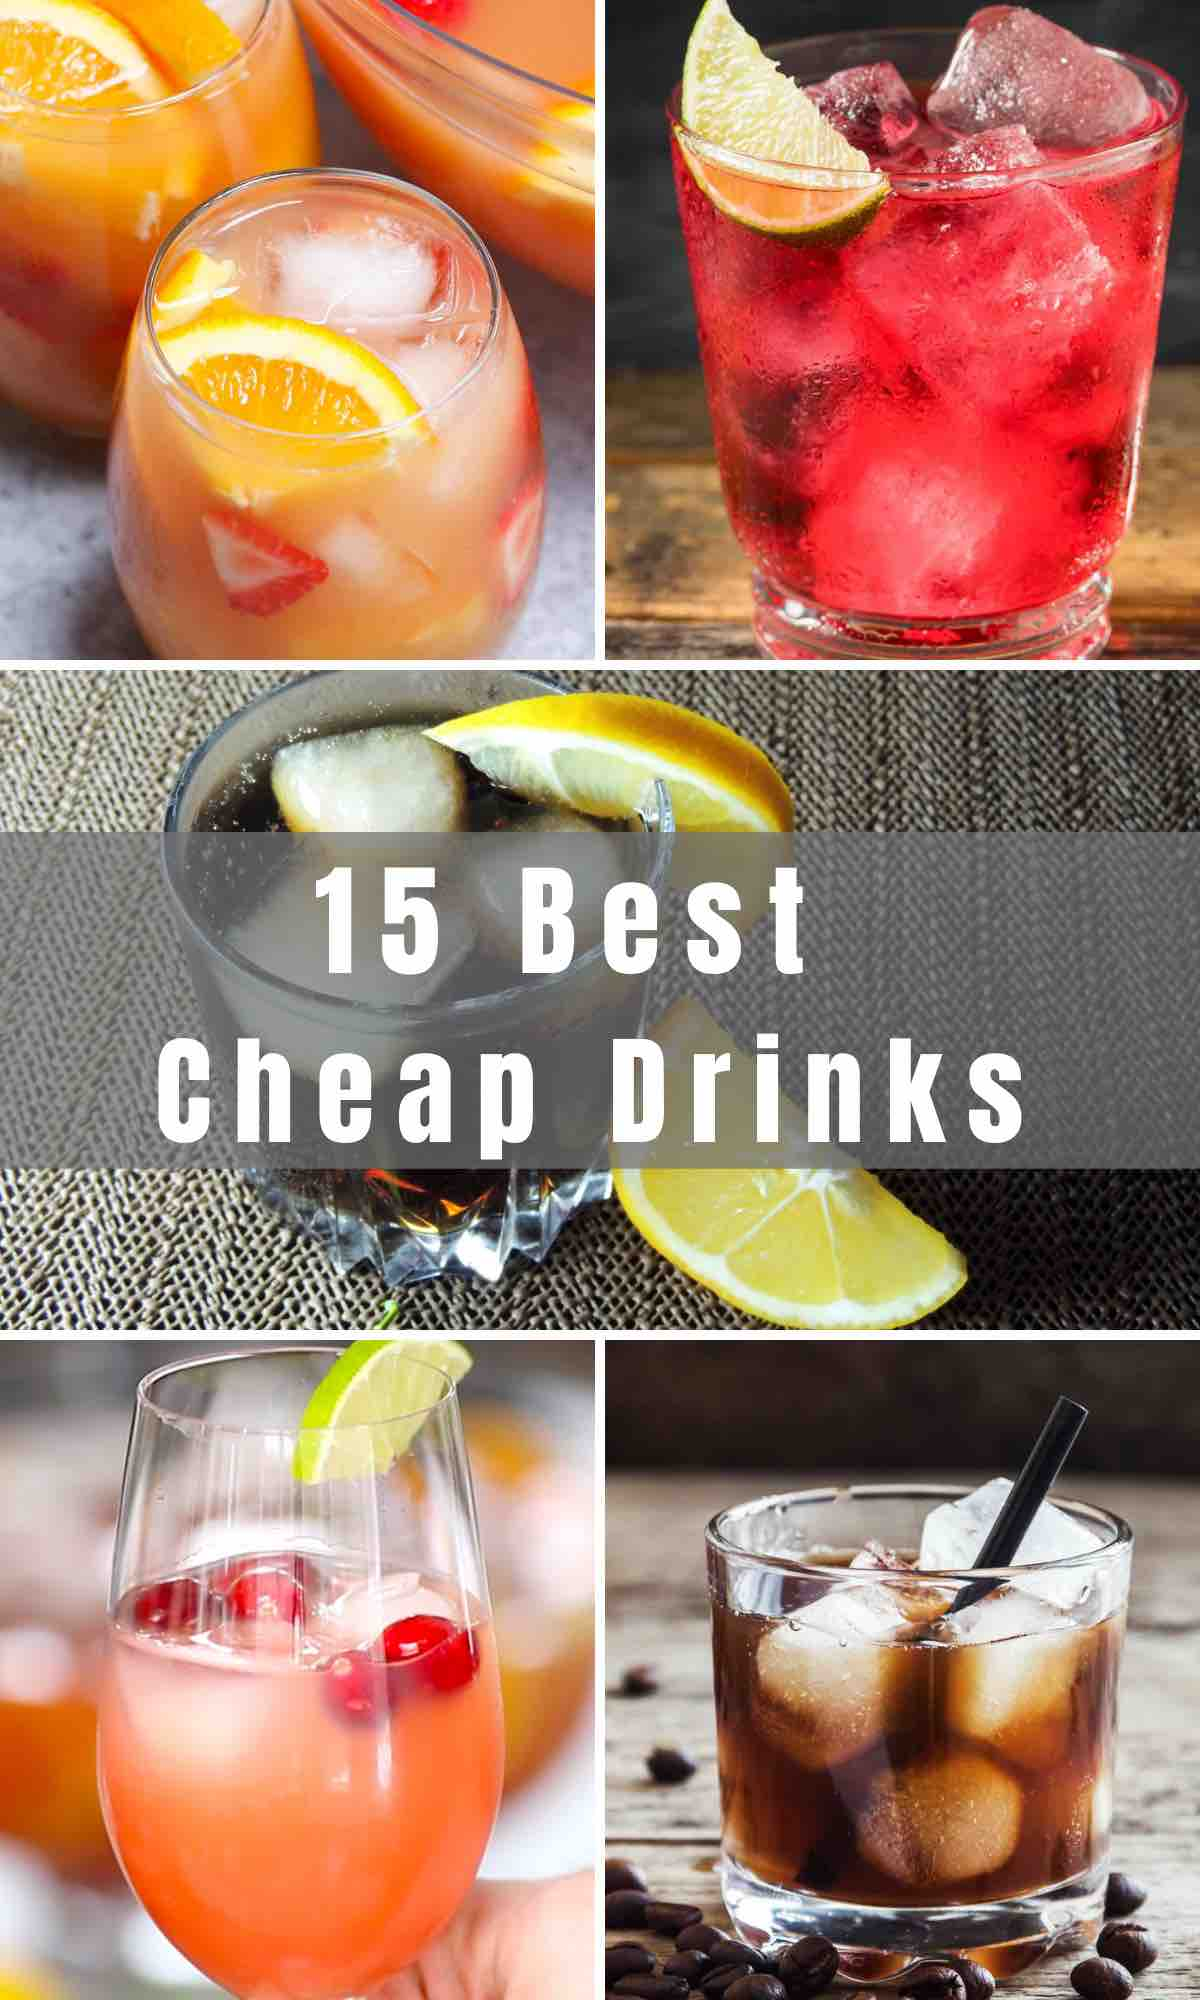 It may surprise you that some of the cheapest drinks are among the most popular drinks at the bar. We've collected 15 Best Cheap Drinks that you can easily make at home without spending a fortune!